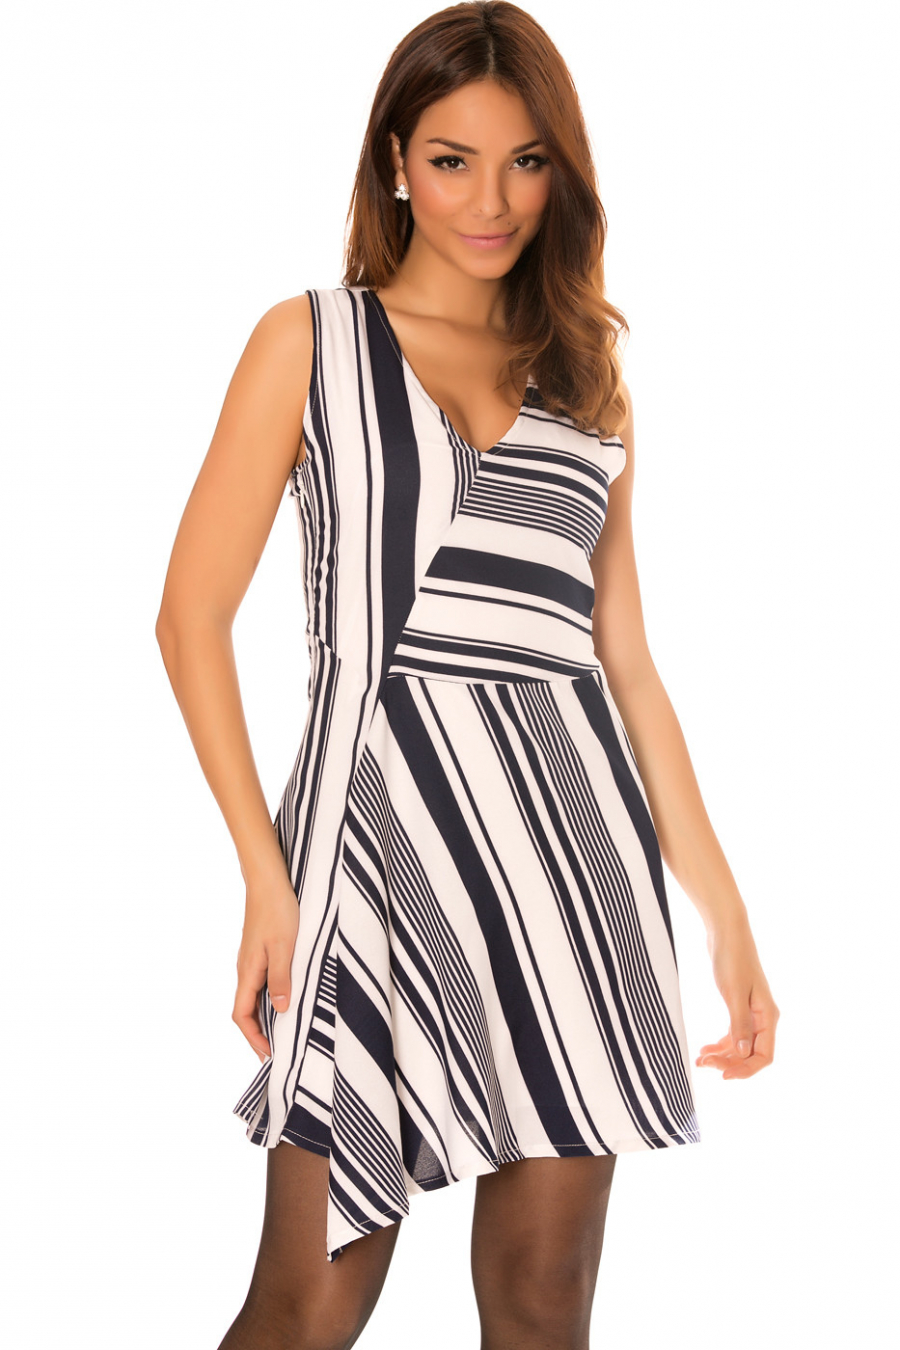 Asymmetric dress in navy and white stripes with V-neck. F5522